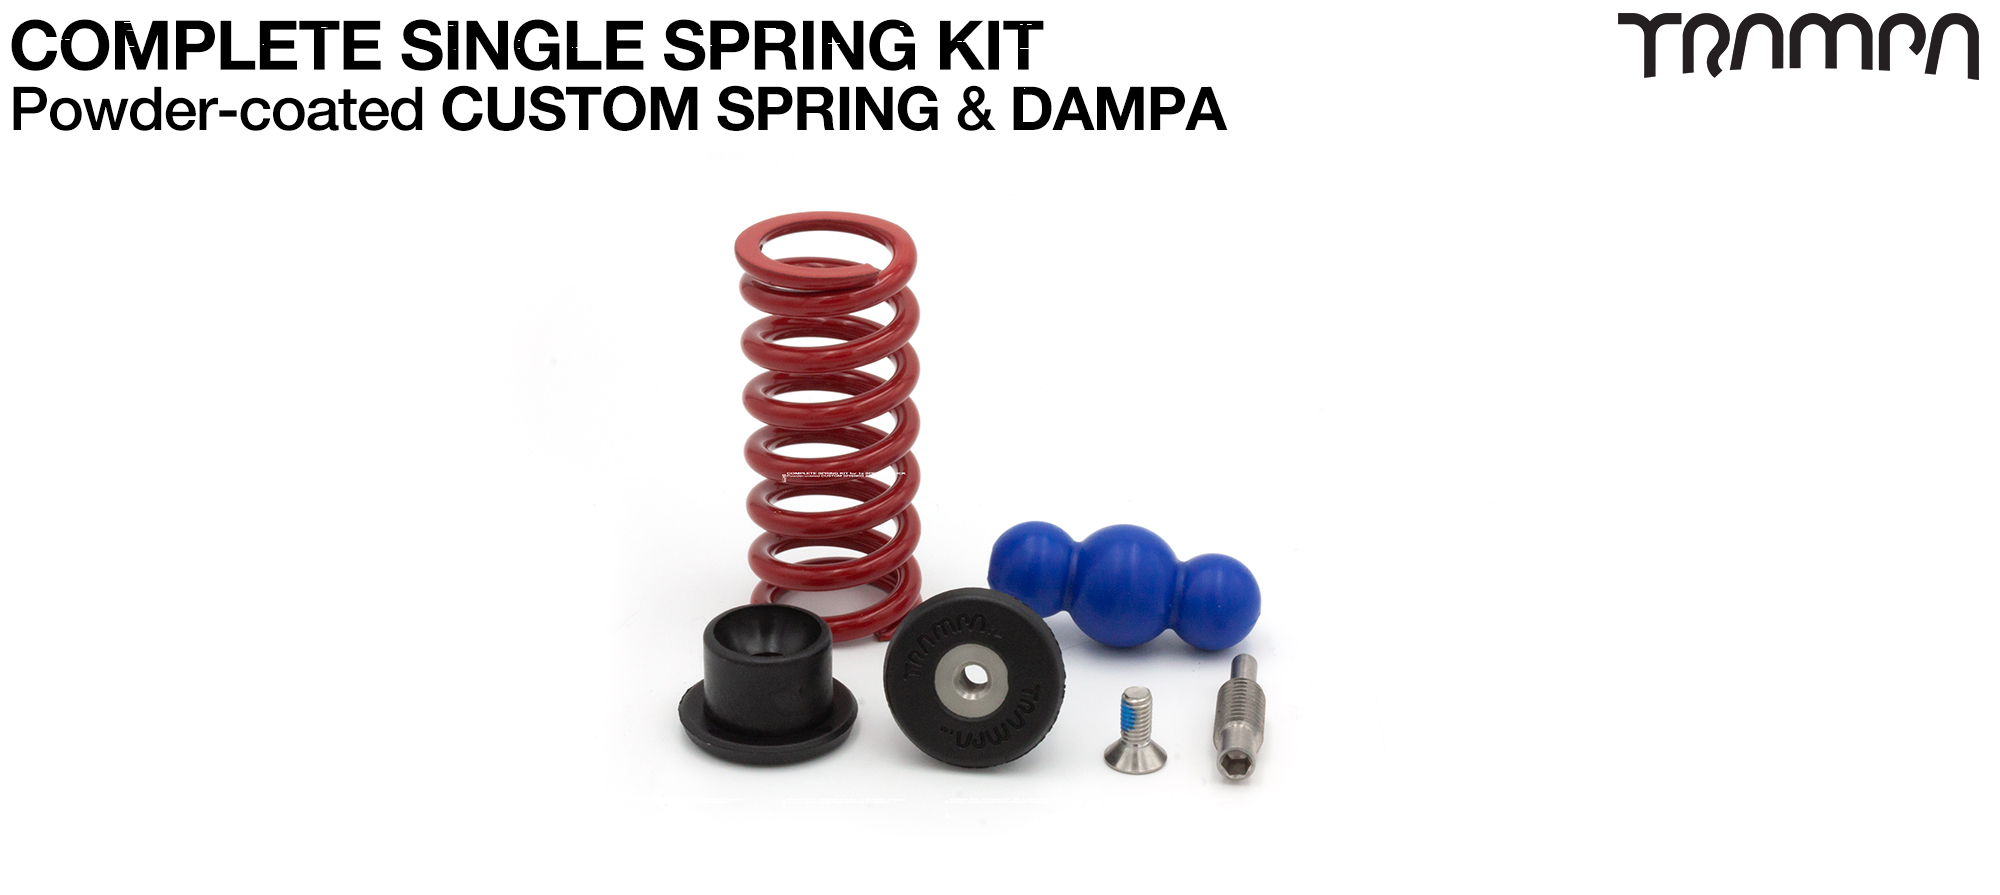 1x Spring 1x Dampa 2x Spring Retainers 1x Spring Adjuster & 1 M5x12mm Countersunk Bolt